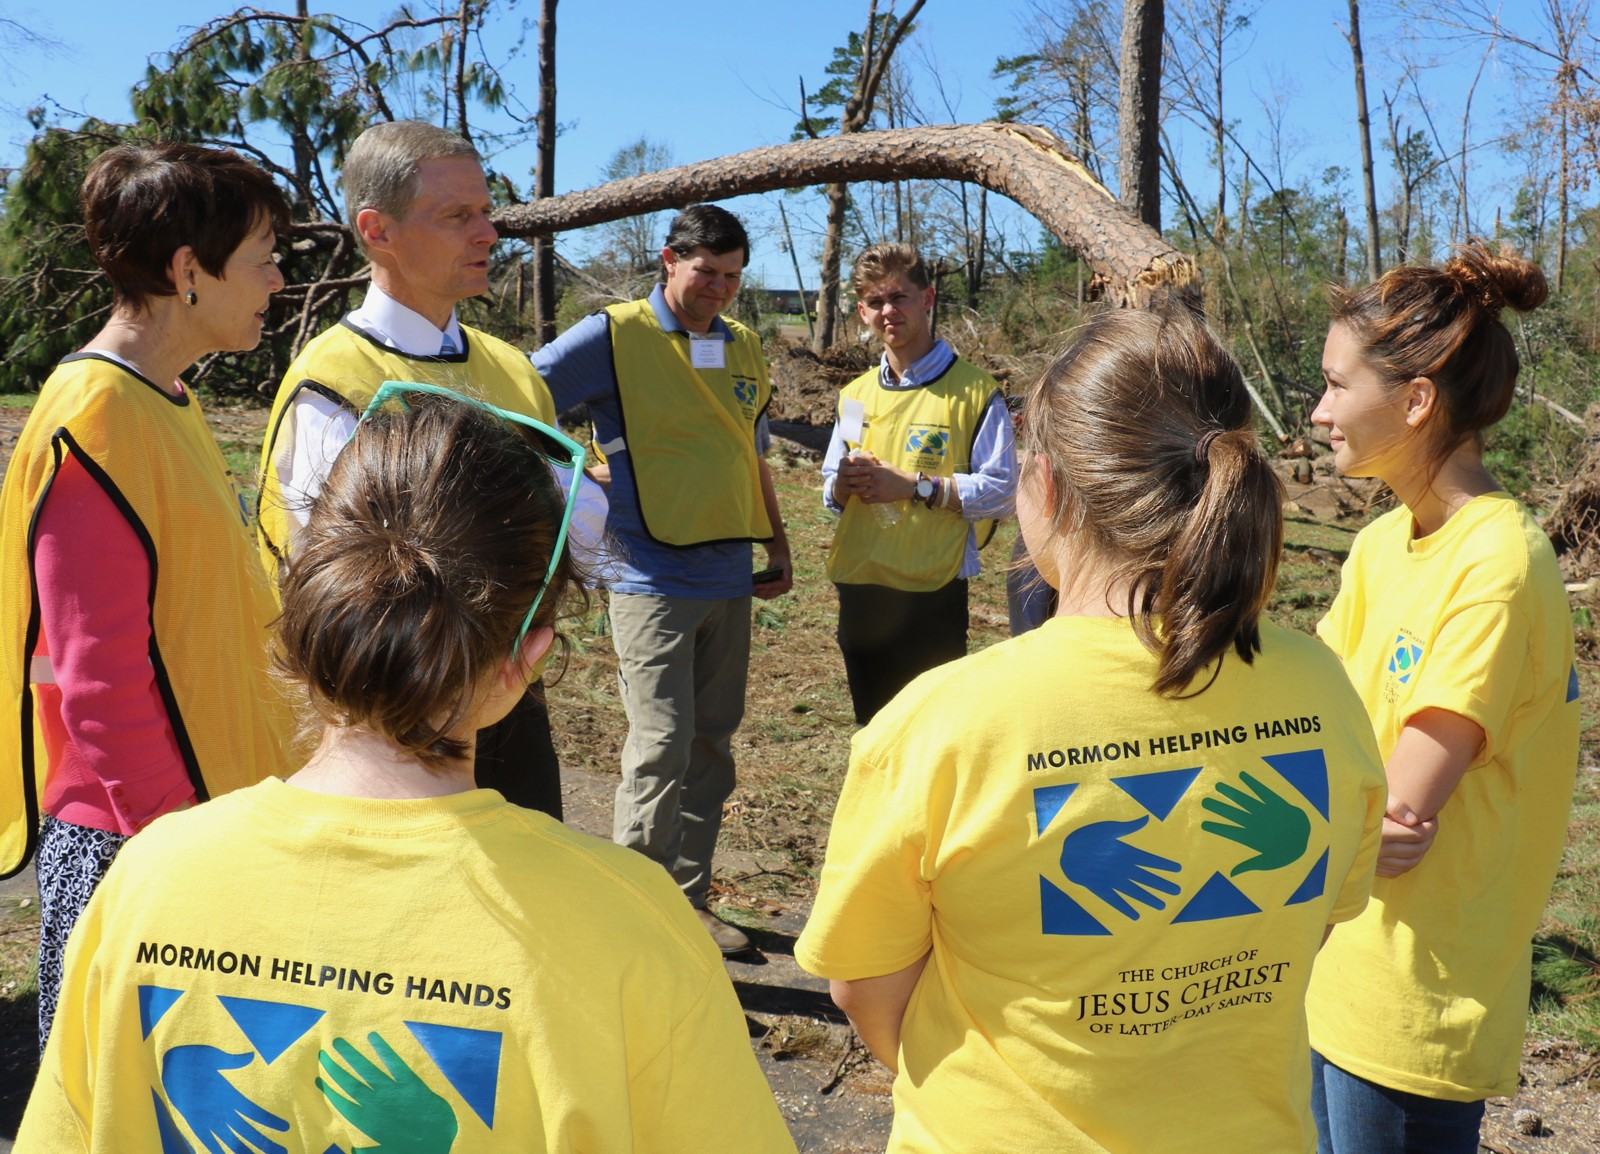 Helping Hands volunteers in Marianna, Florida, take a break for a few minutes on Oct. 21, 2018, to speak with Elder David A. Bednar of The Church of Jesus Christ of Latter-day Saints' Quorum of the Twelve Apostles and Sister Susan Bednar. Photo: Jason Swensen, Church News